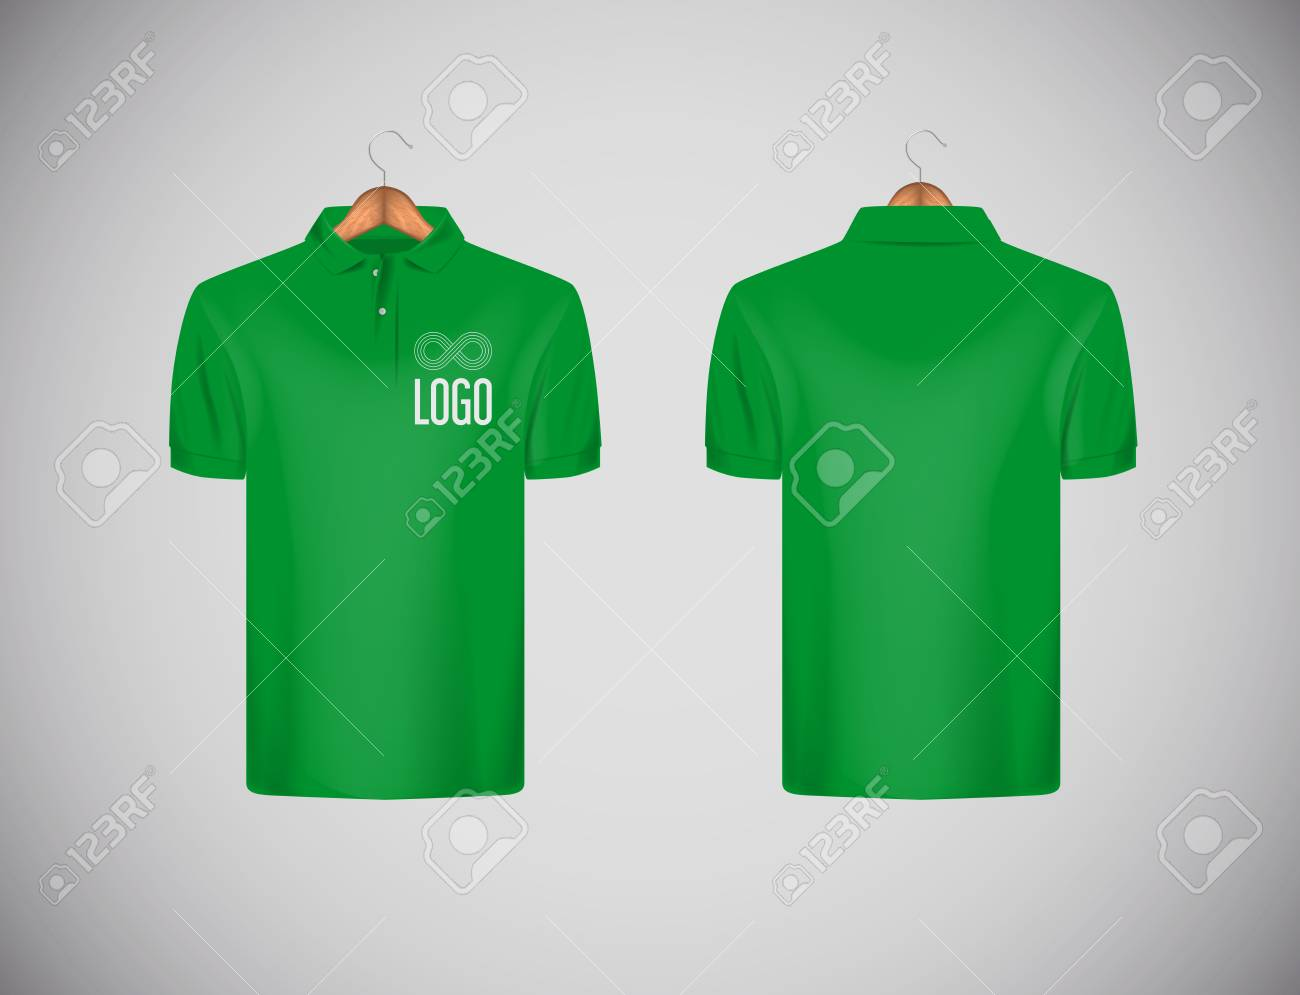 Men's slim-fitting short sleeve polo shirt with logo for advertising. Green polo shirt with wooden hanger isolated mock-up design template for branding. - 117663504